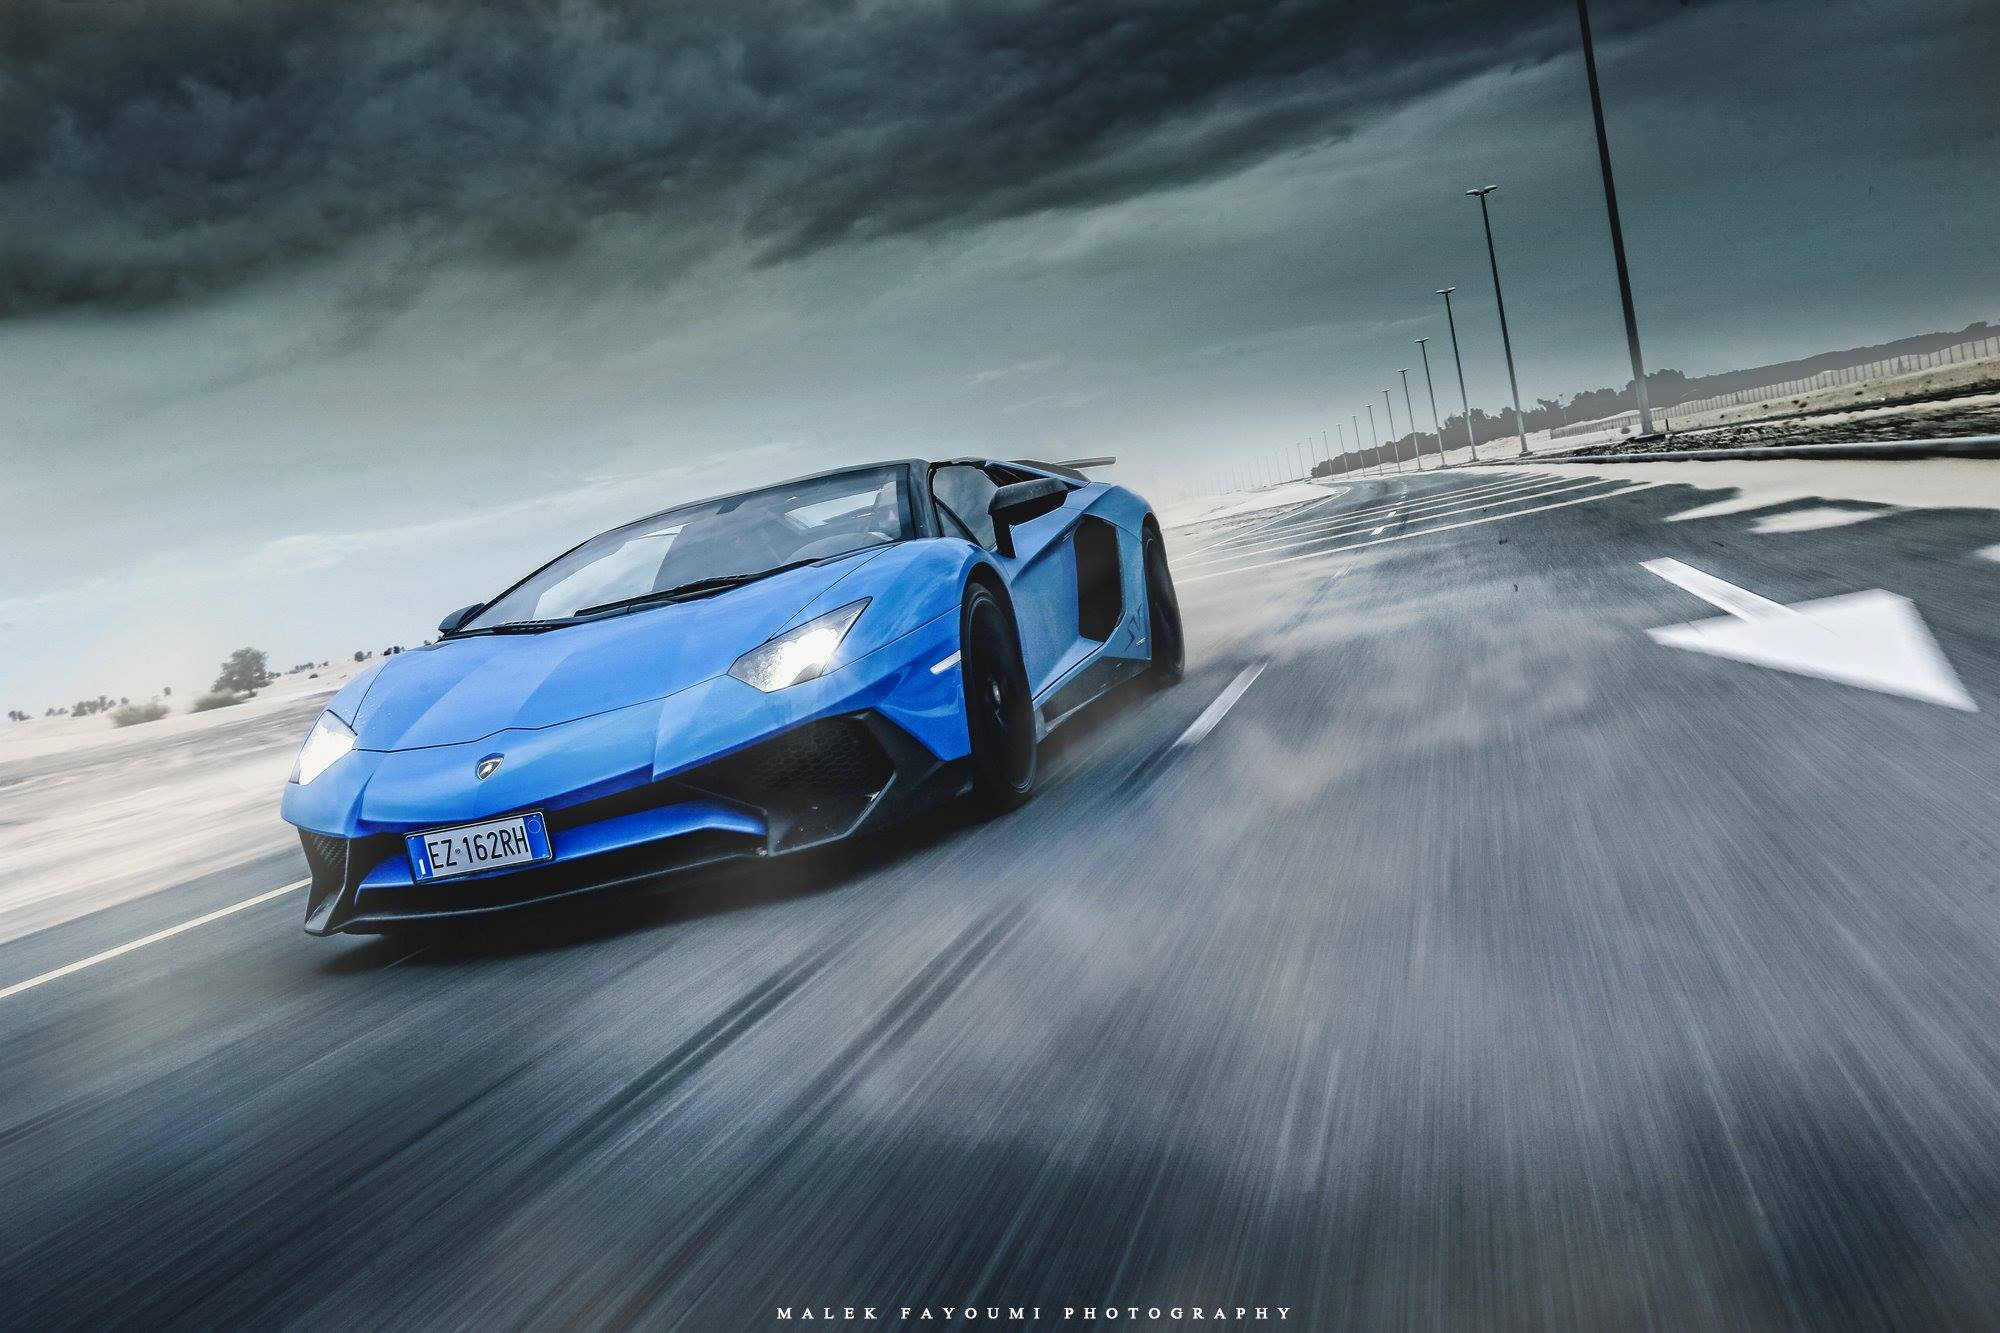 Here Is Another Amazing Picture Of The Lamborghini